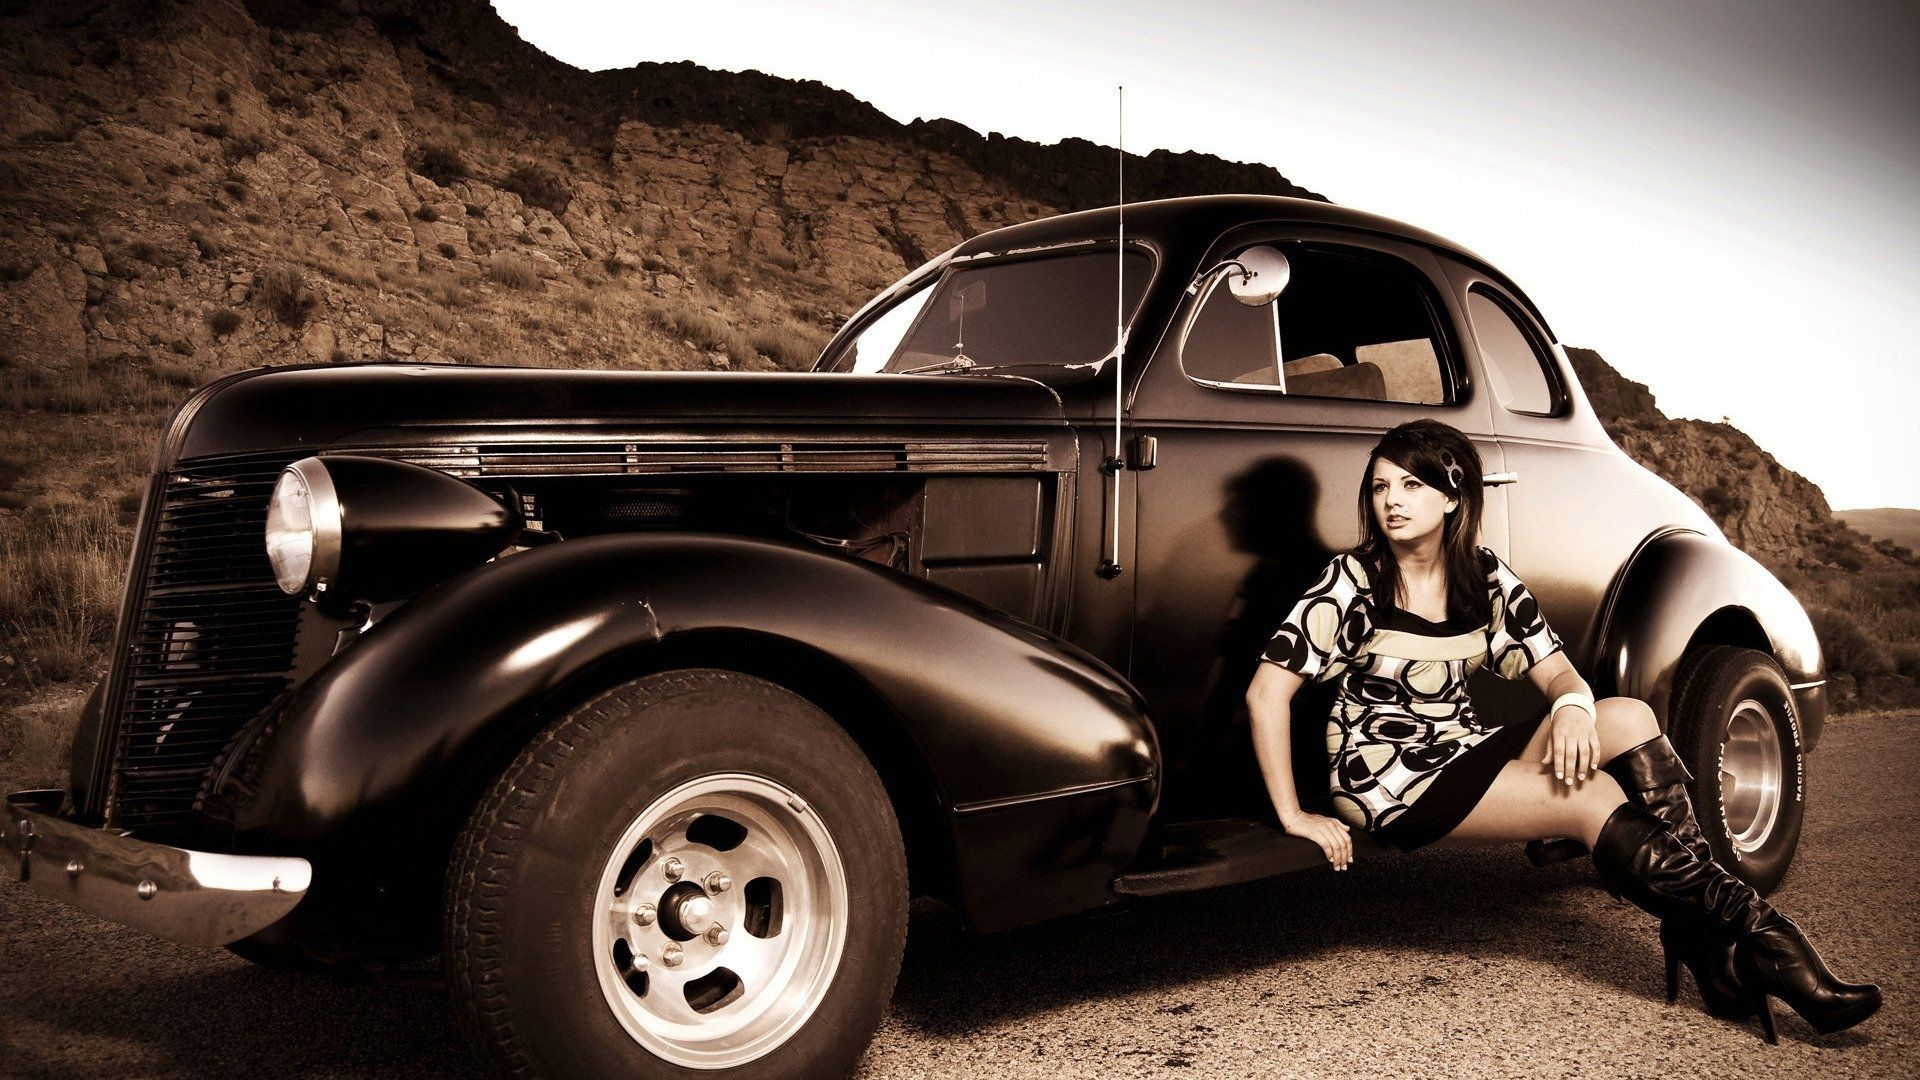 nationwide girl - Yahoo Image Search Results | Autos | Pinterest ...